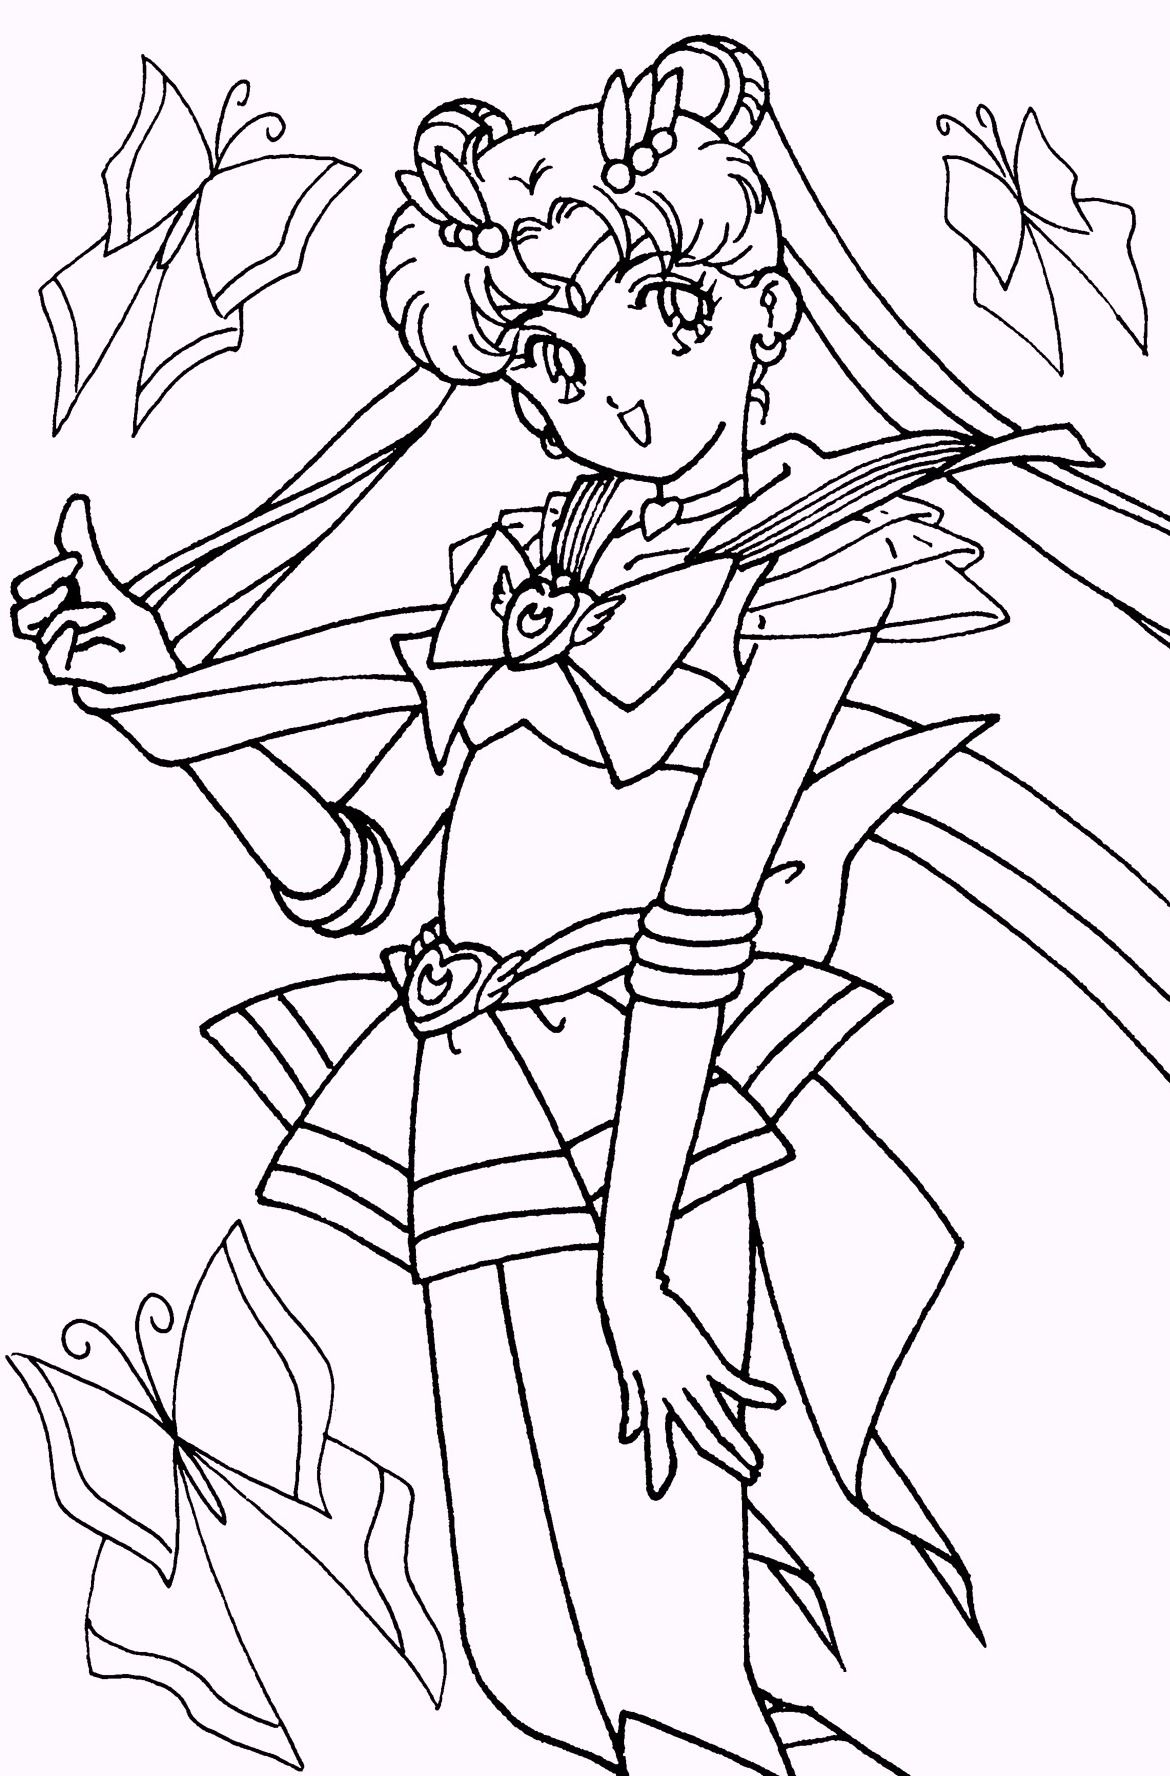 Pin By Bryantjessi On Sailor Moon Themed Moon Coloring Pages Sailor Moon Coloring Pages Sailor Moon Art [ 1776 x 1170 Pixel ]